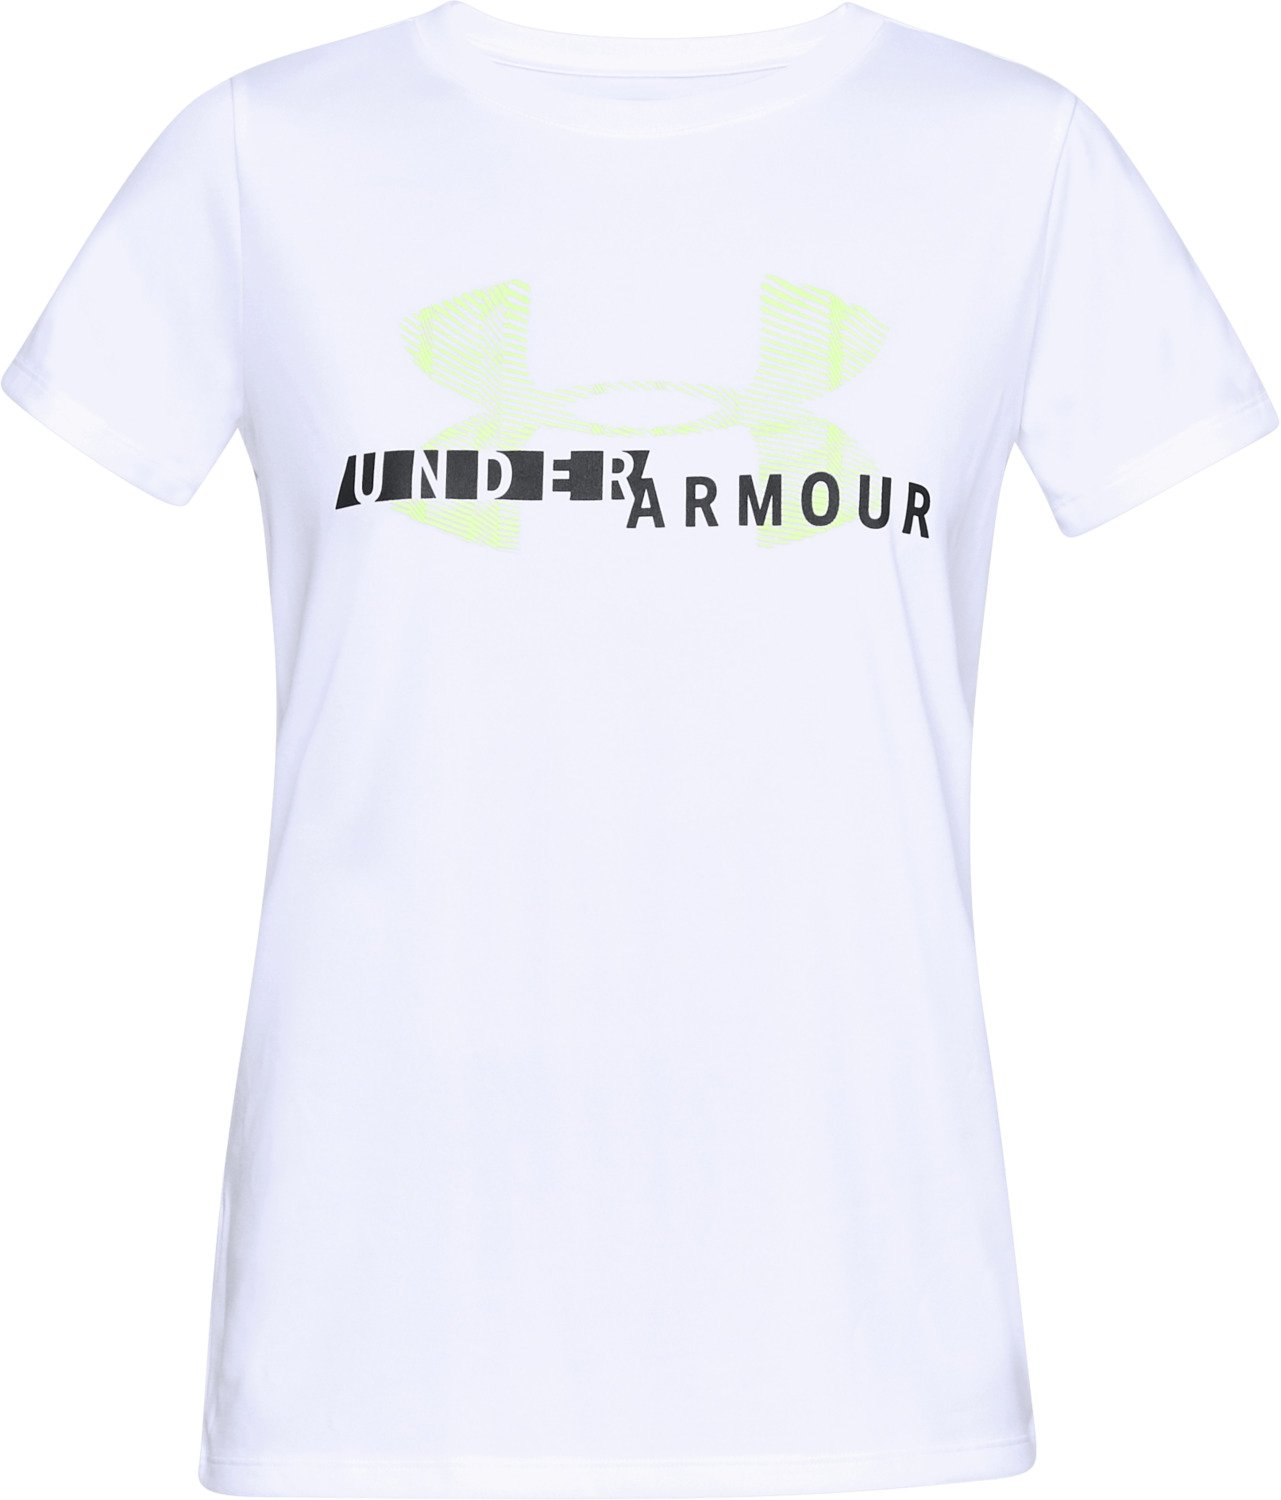 89ce2eee Shirts & Tees Under Armour Womens Tech Short Sleeve Crew Graphic Under  Armour Apparel 1318143 Athleisure